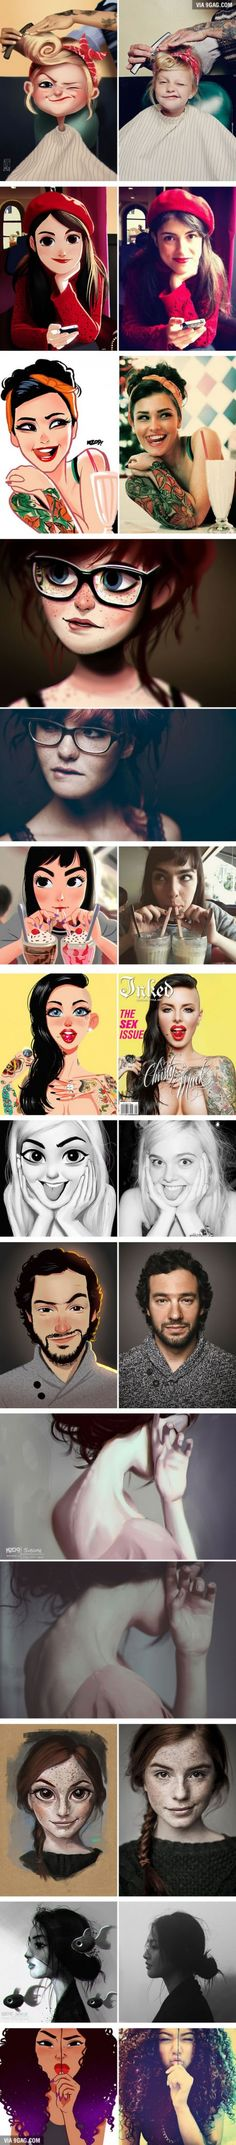 Artist Turns Photos Of Random People Into Fun #Illustrations #Art